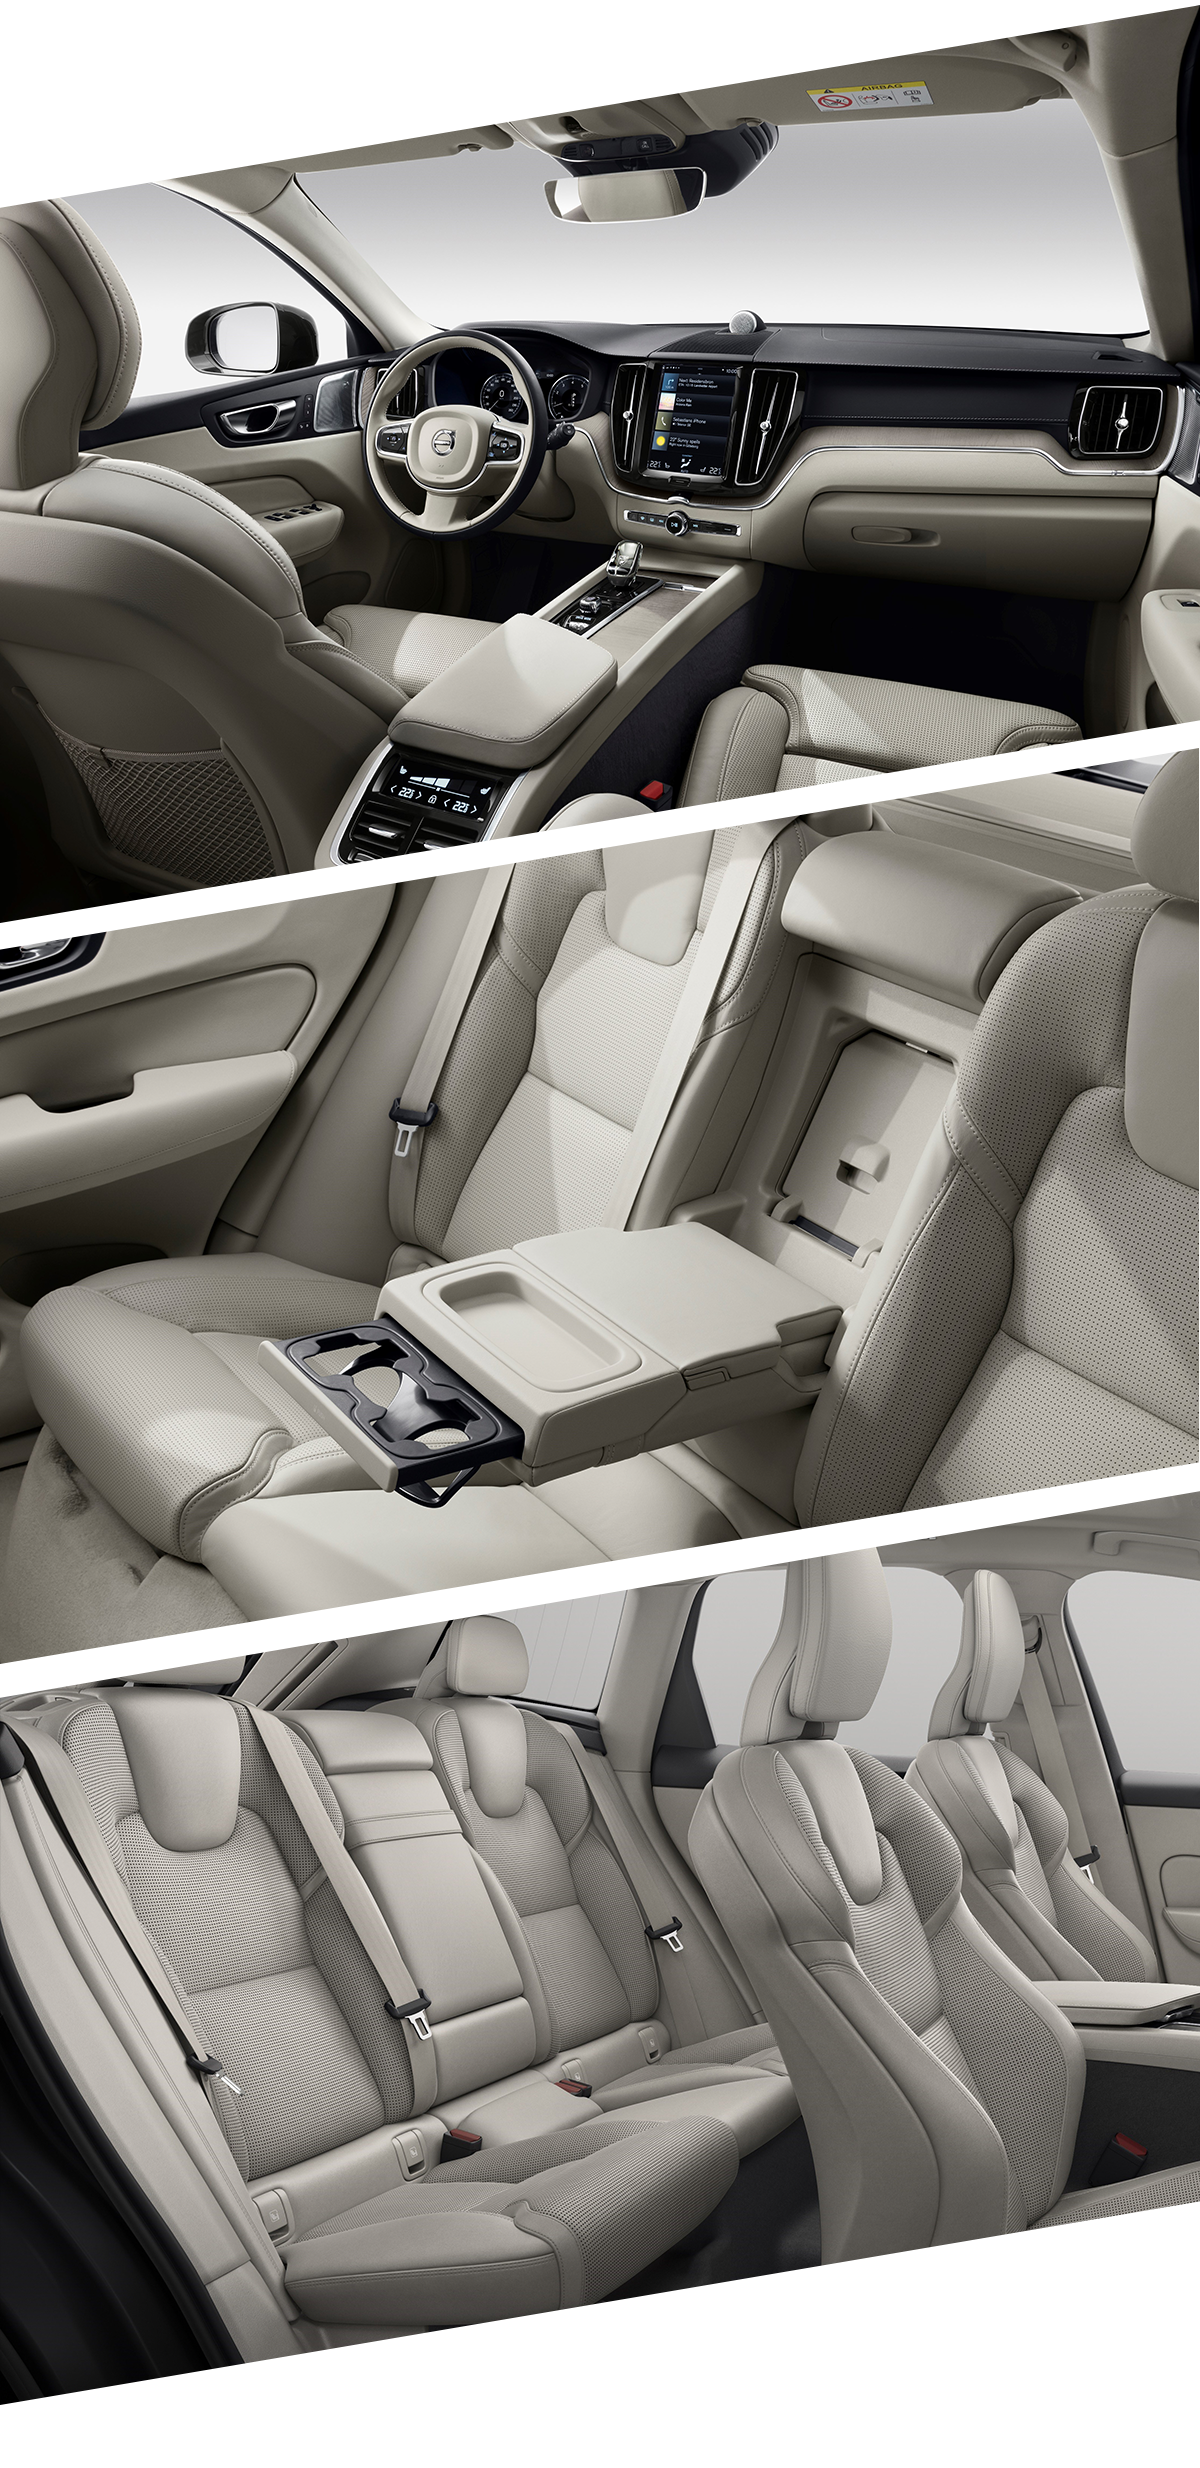 2021 Volvo XC60 Interior Images in Lynchburg, VA